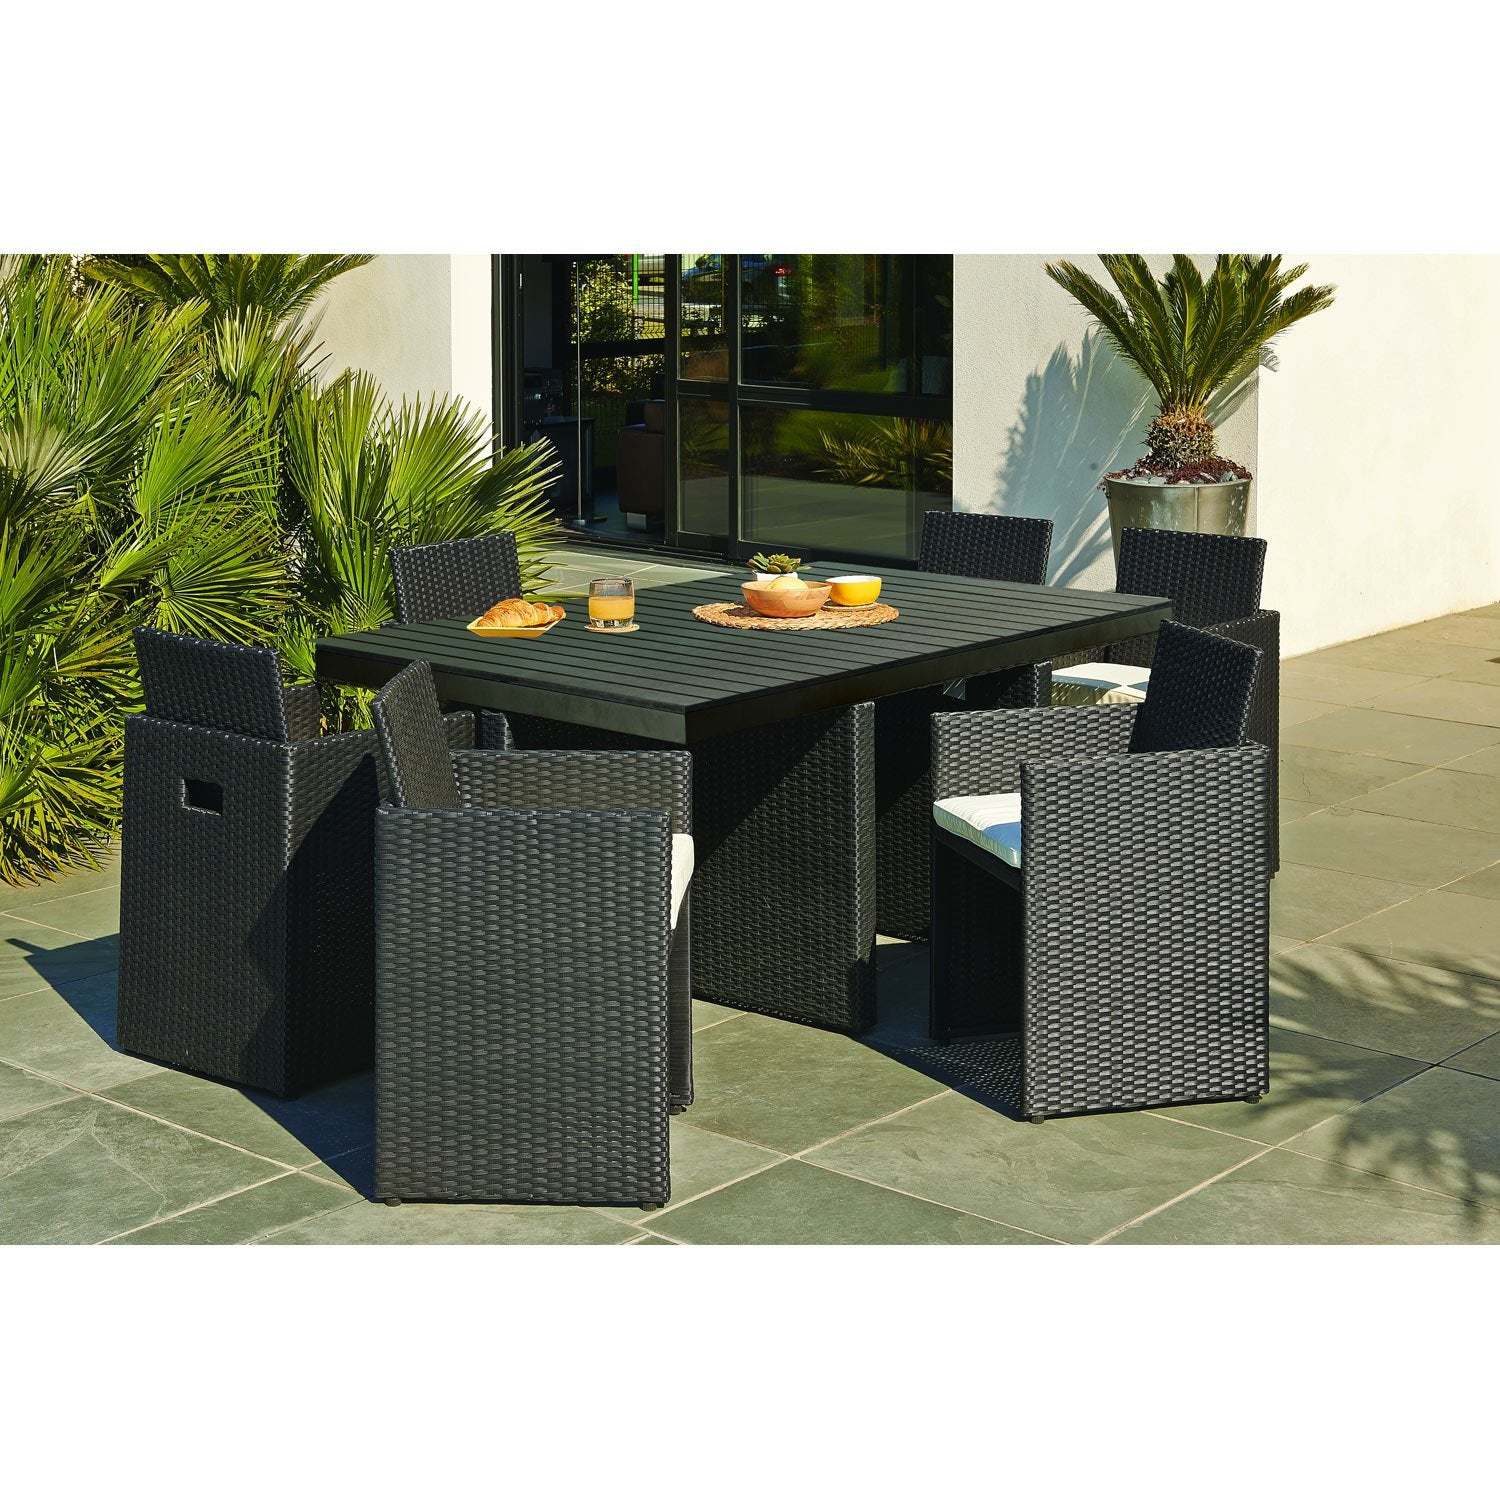 Salon de jardin encastrable r sine tress e noir 1 table for Resine polyester leroy merlin